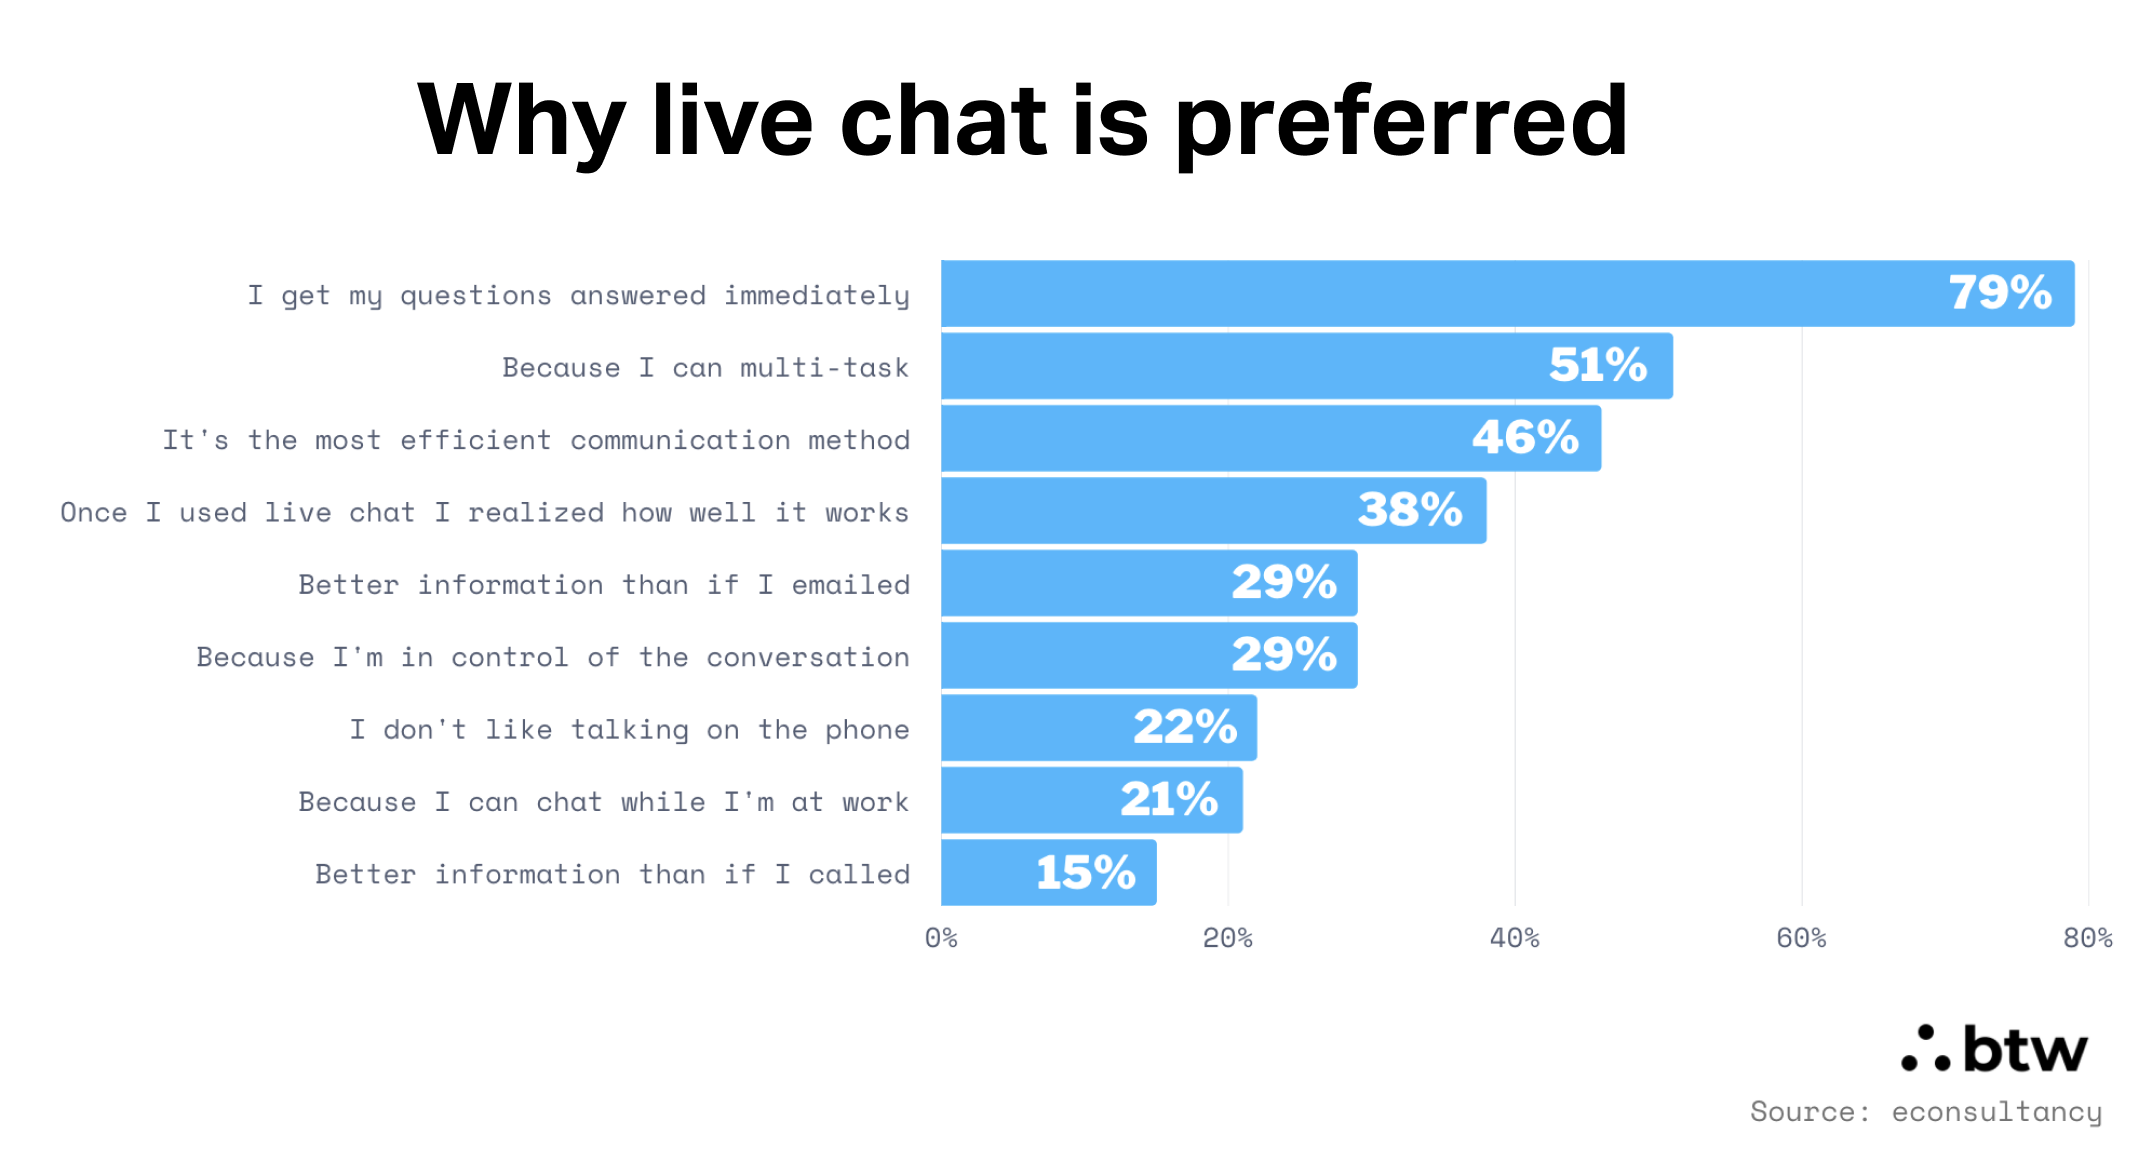 Why live chat is preferred